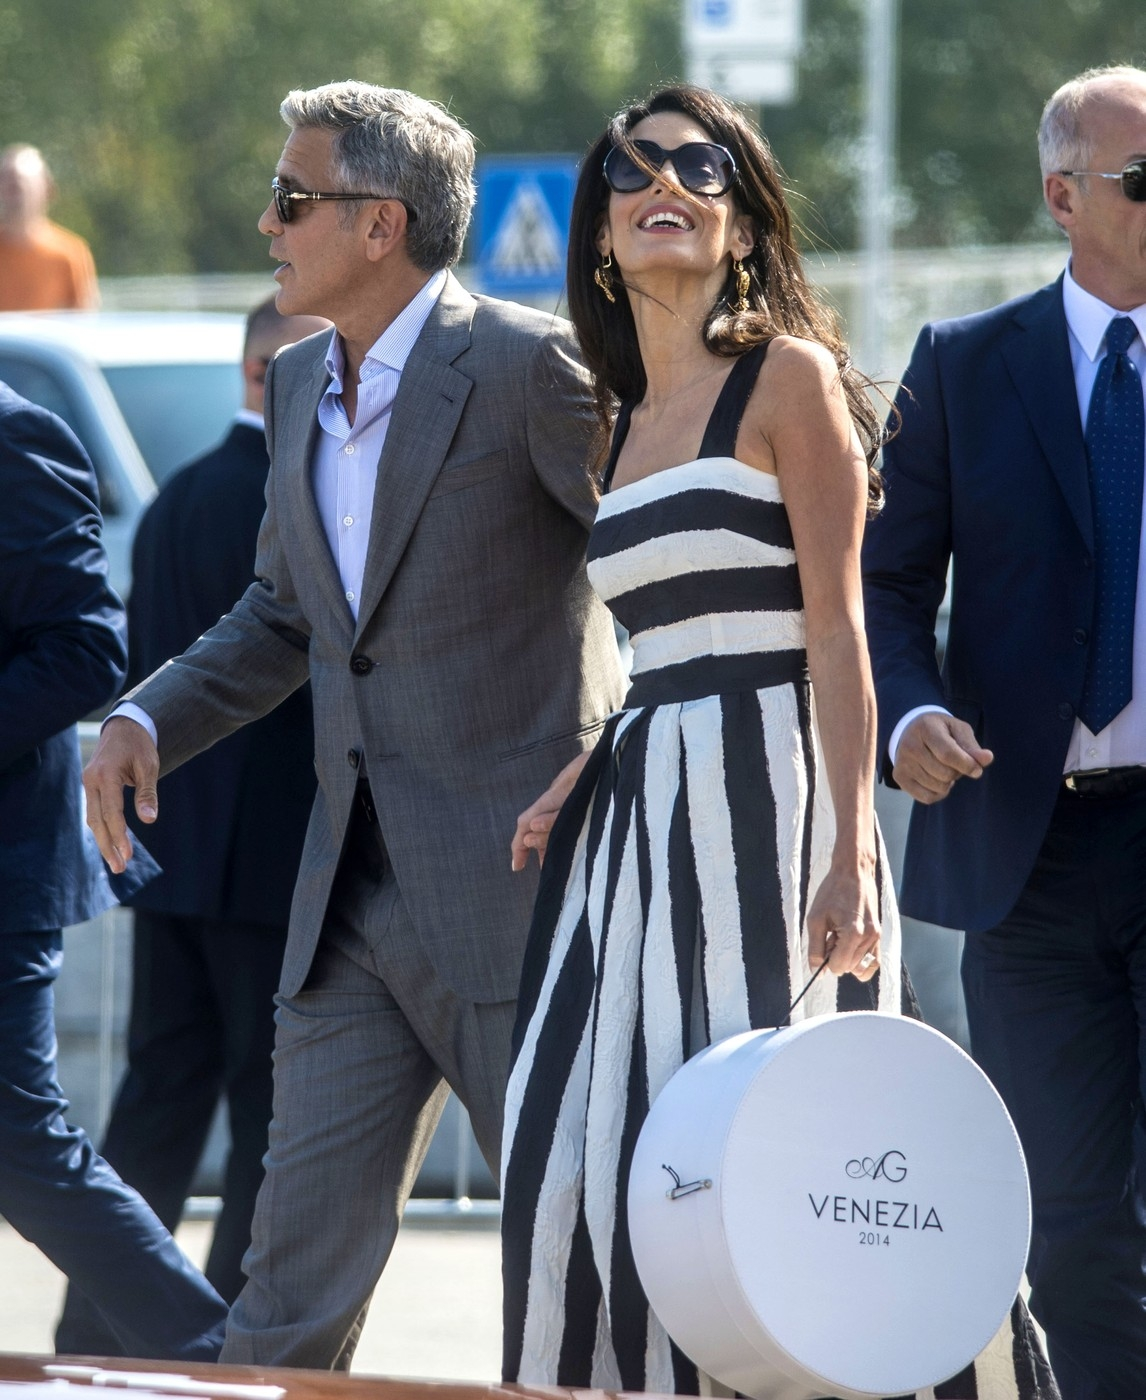 George Clooney & Amal Alamuddin Arrive In Venice Ahead Of Wedding